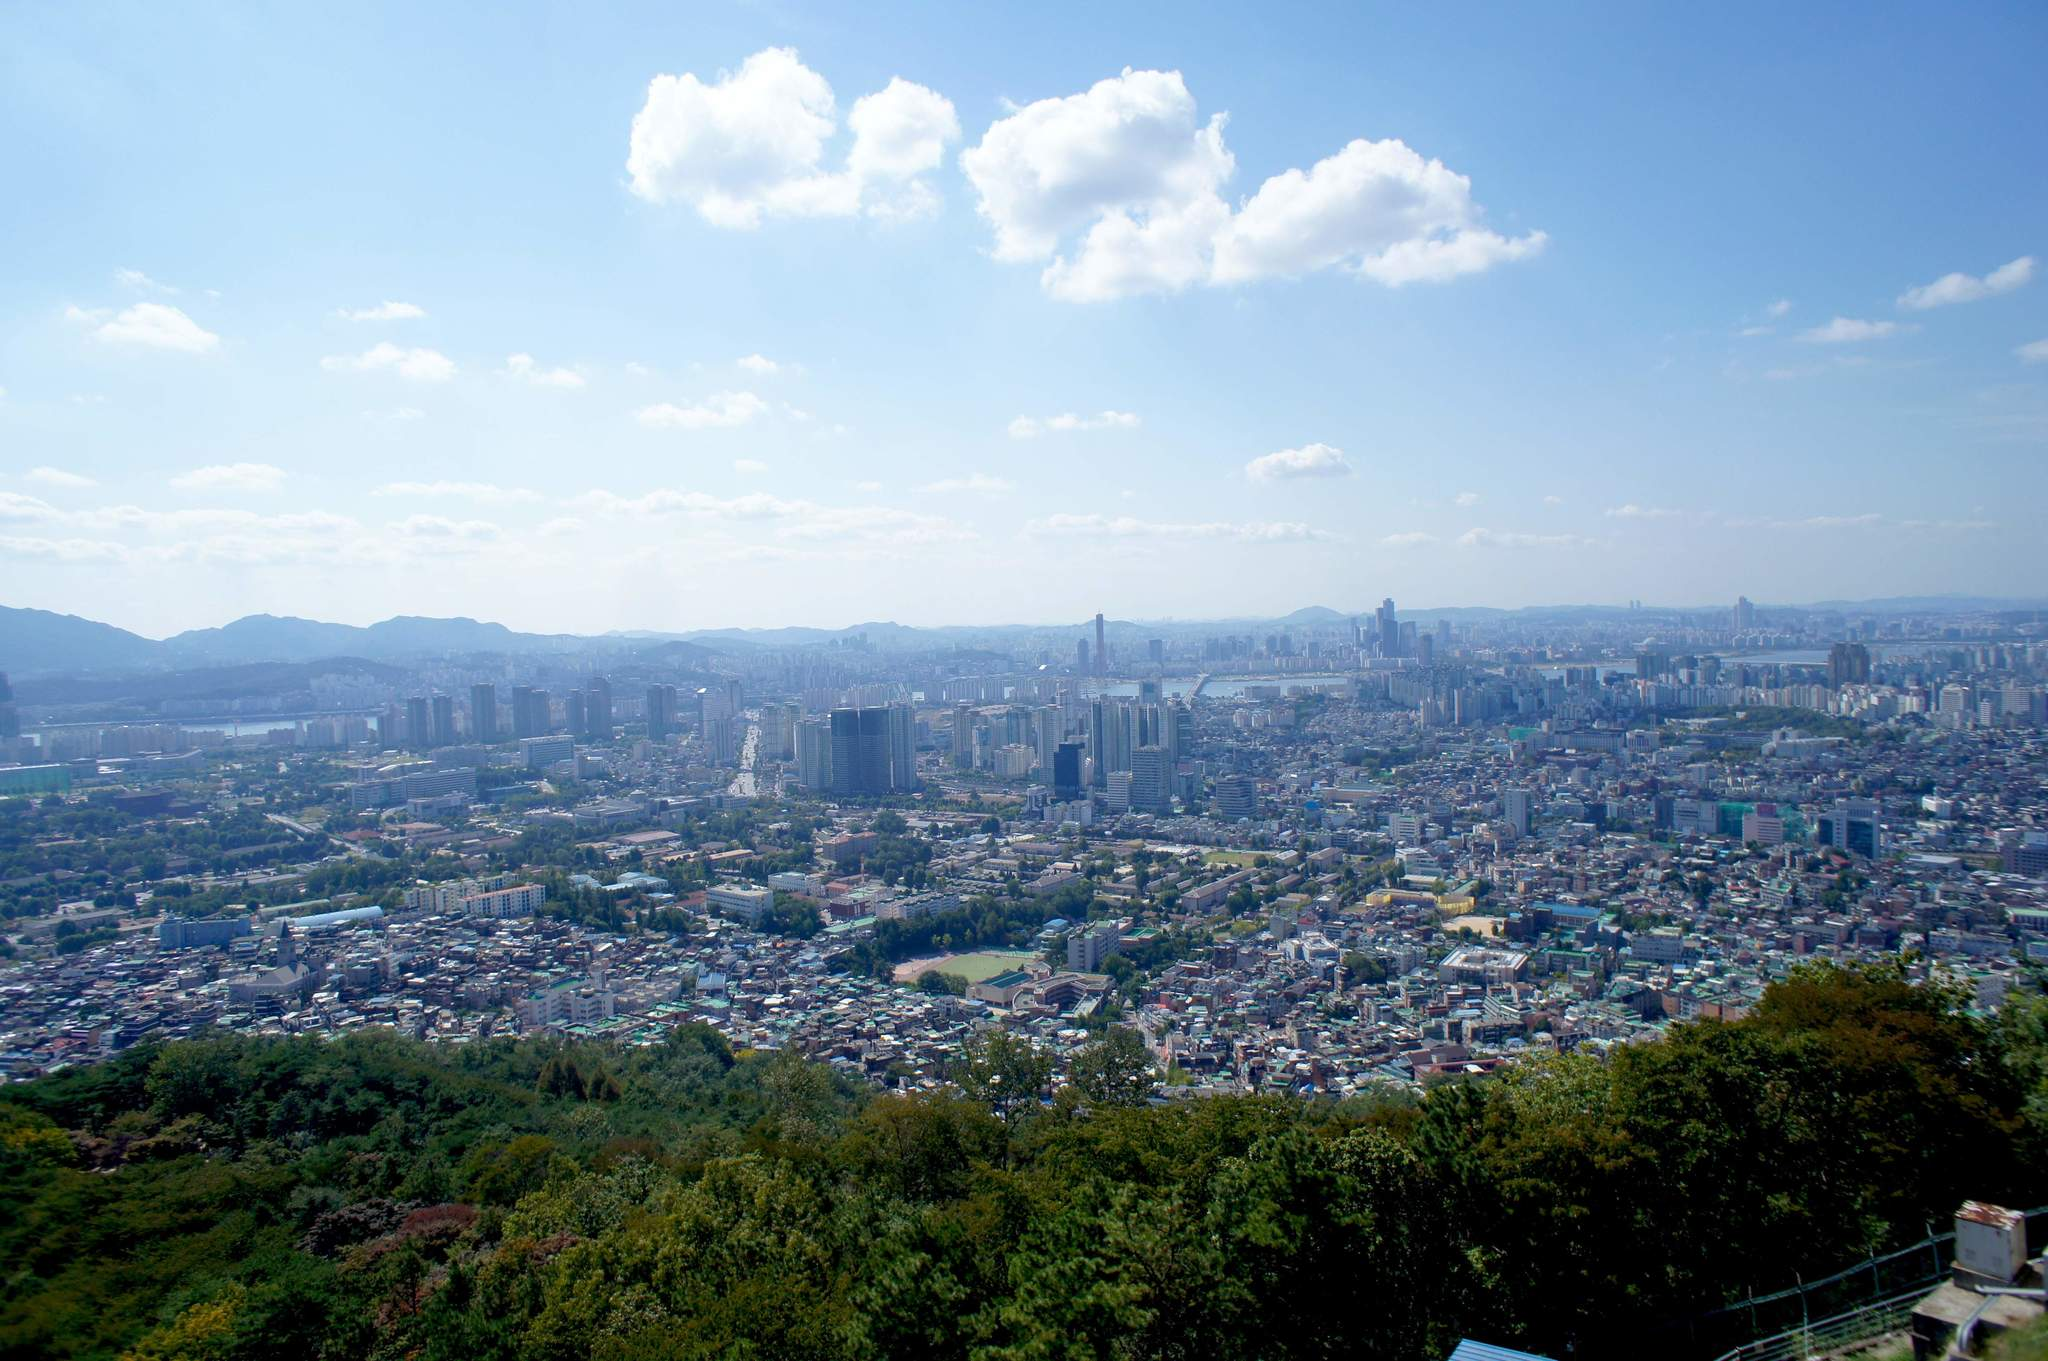 Seoul Photo Diary - IN BETWEEN LATTES